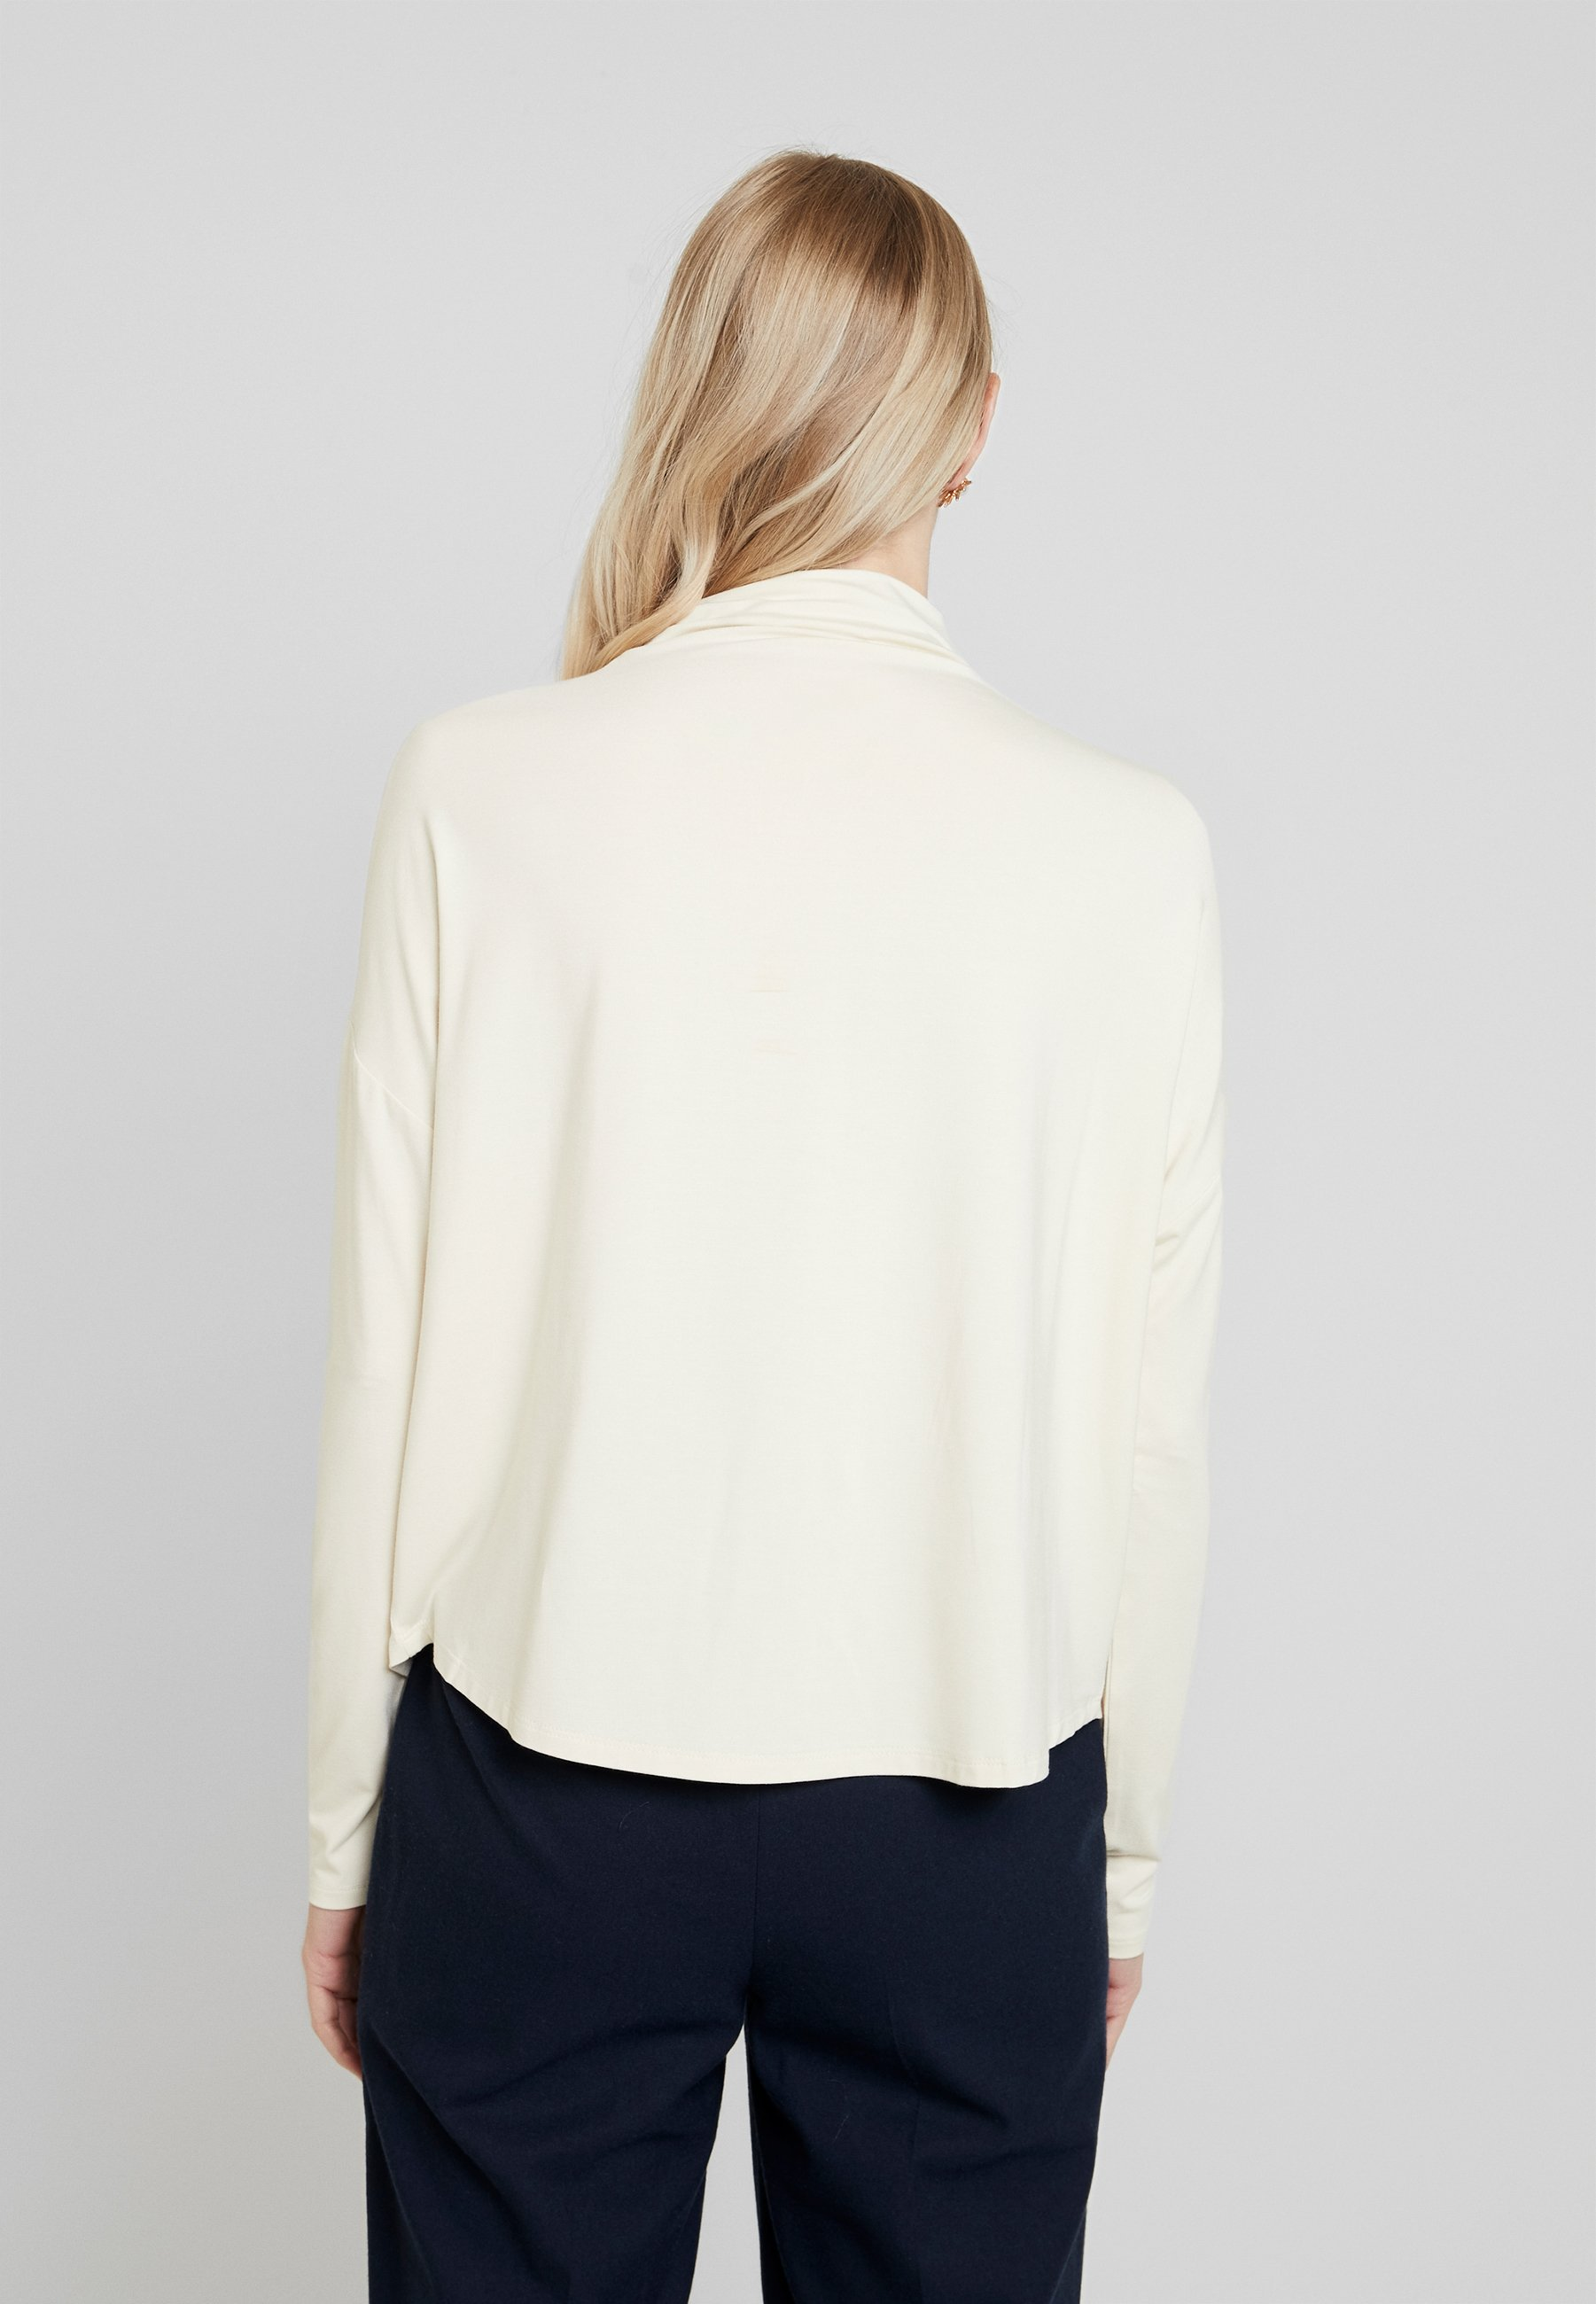 à Opus shirt longues soft SUJANET manches cream dQrthsC